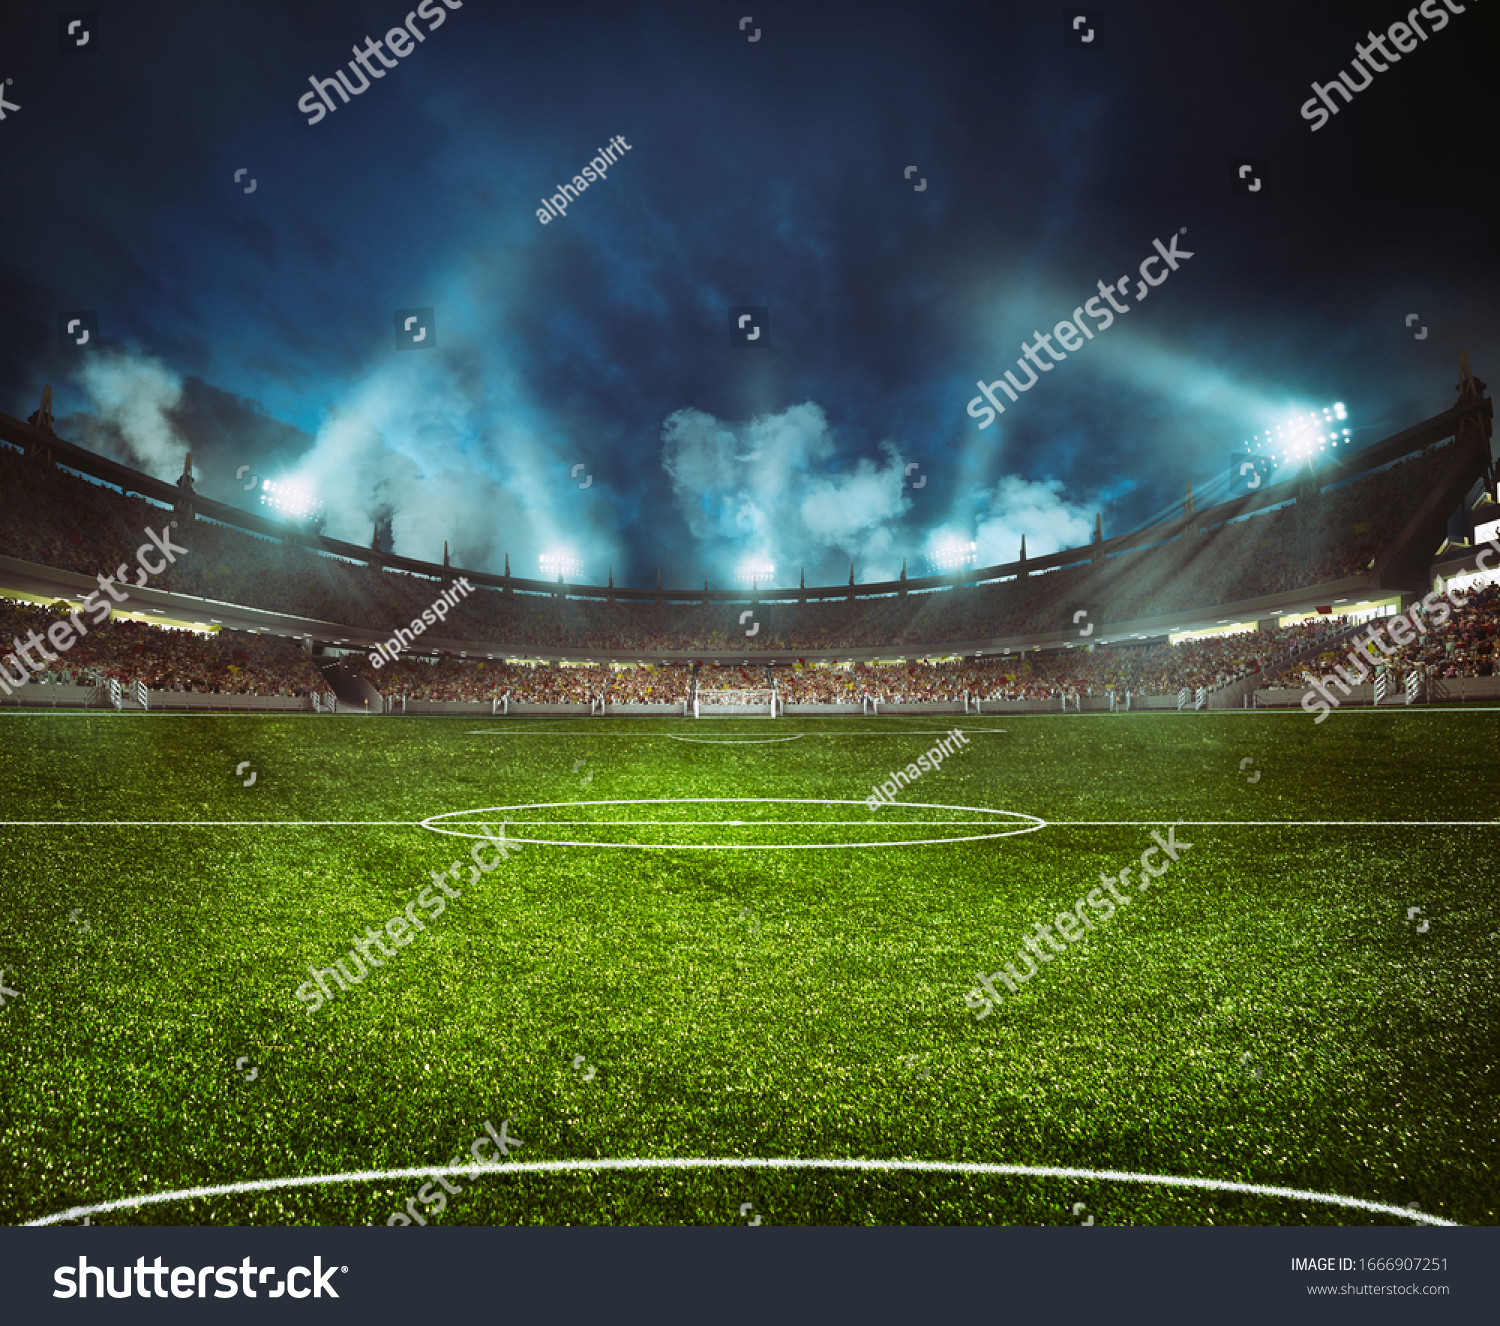 Football stadium with the stands full of fans waiting for the night game #1666907251